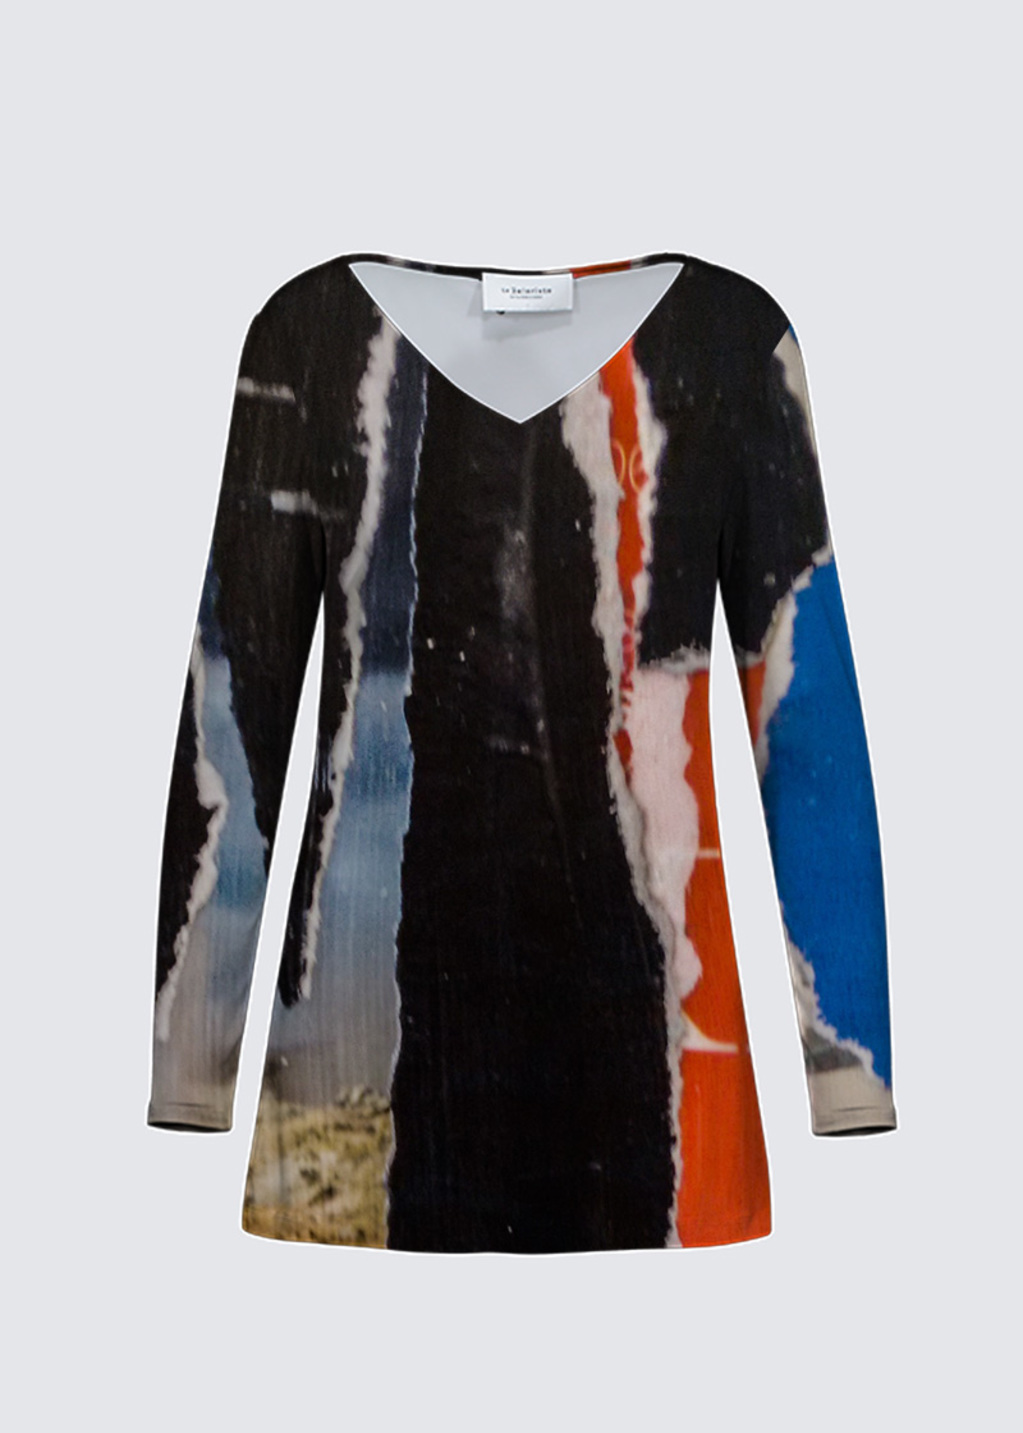 Picture of Red, black and blue Marlene Top